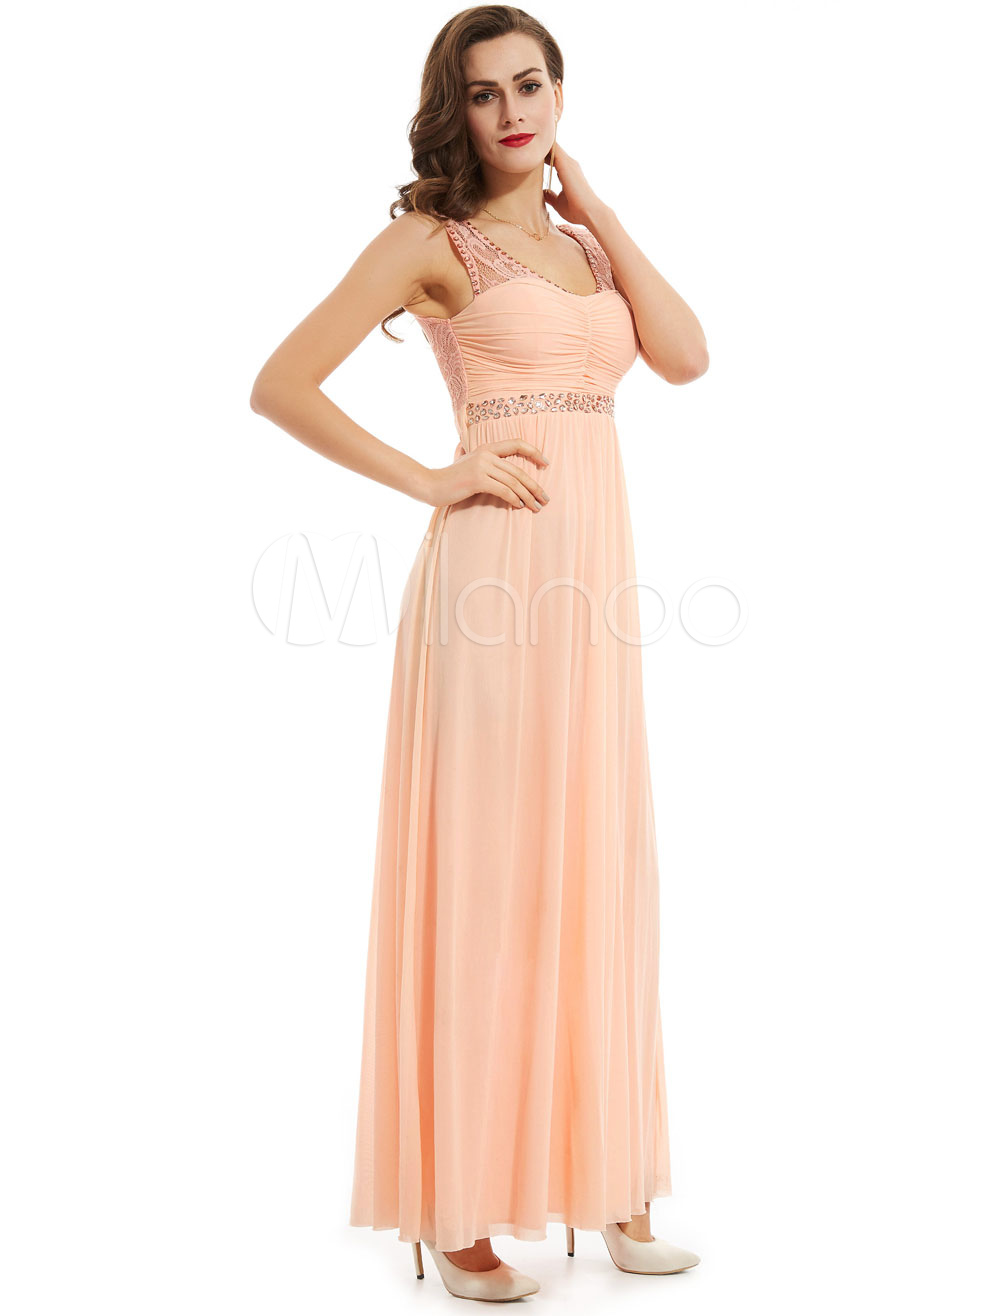 Buy Long Prom Dresses V Neck Peach Sleeveless Pleated Lace Beading Chiffon Formal Party Dress for $70.39 in Milanoo store